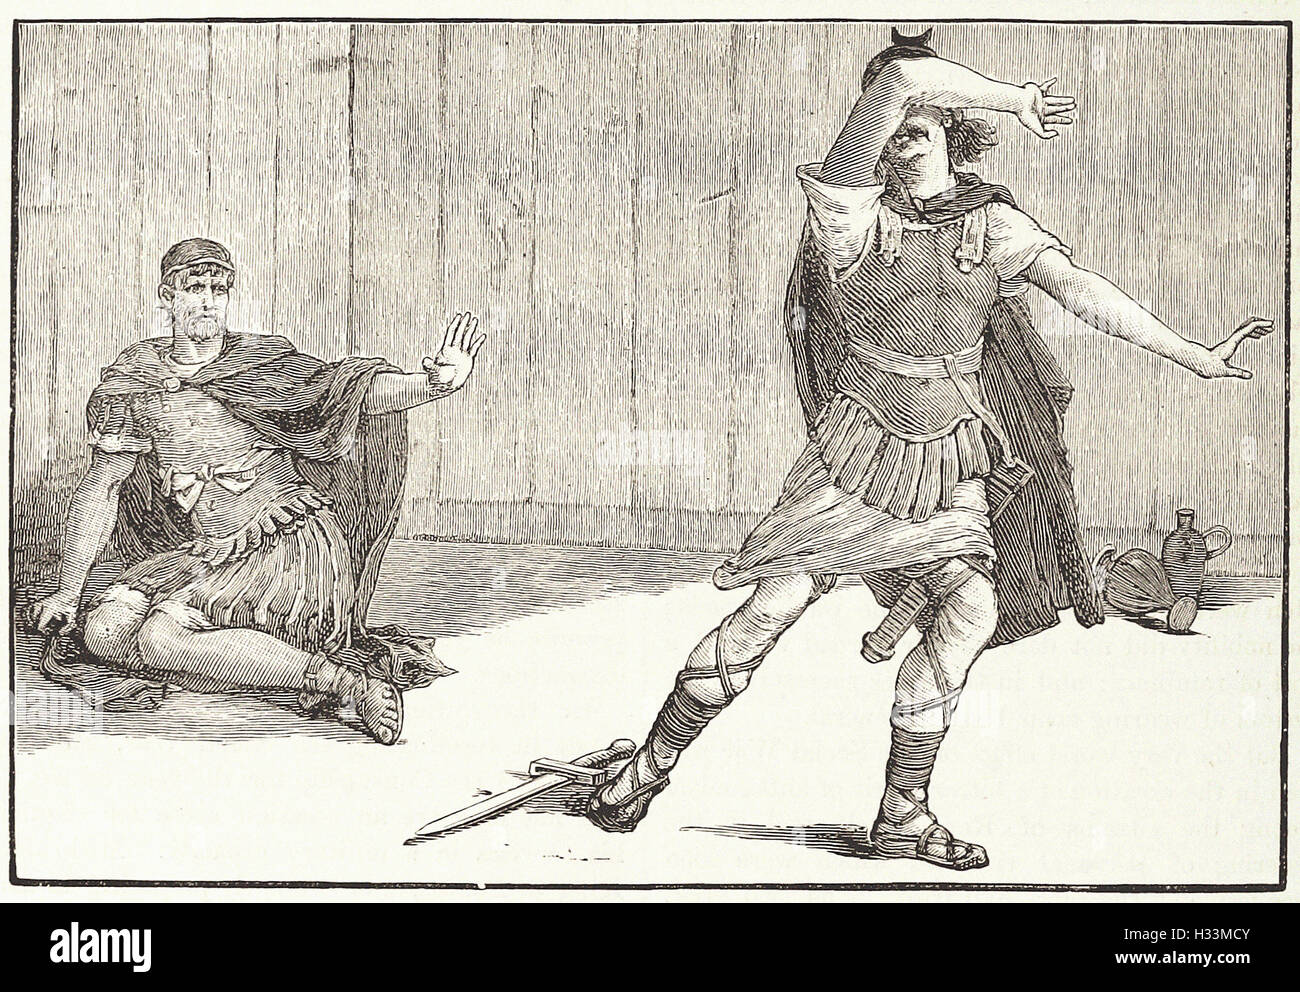 """ DURST THOU KILL CAIUS MAllIUS ? "" - from 'Cassell's Illustrated Universal History' - 1882 - Stock Image"